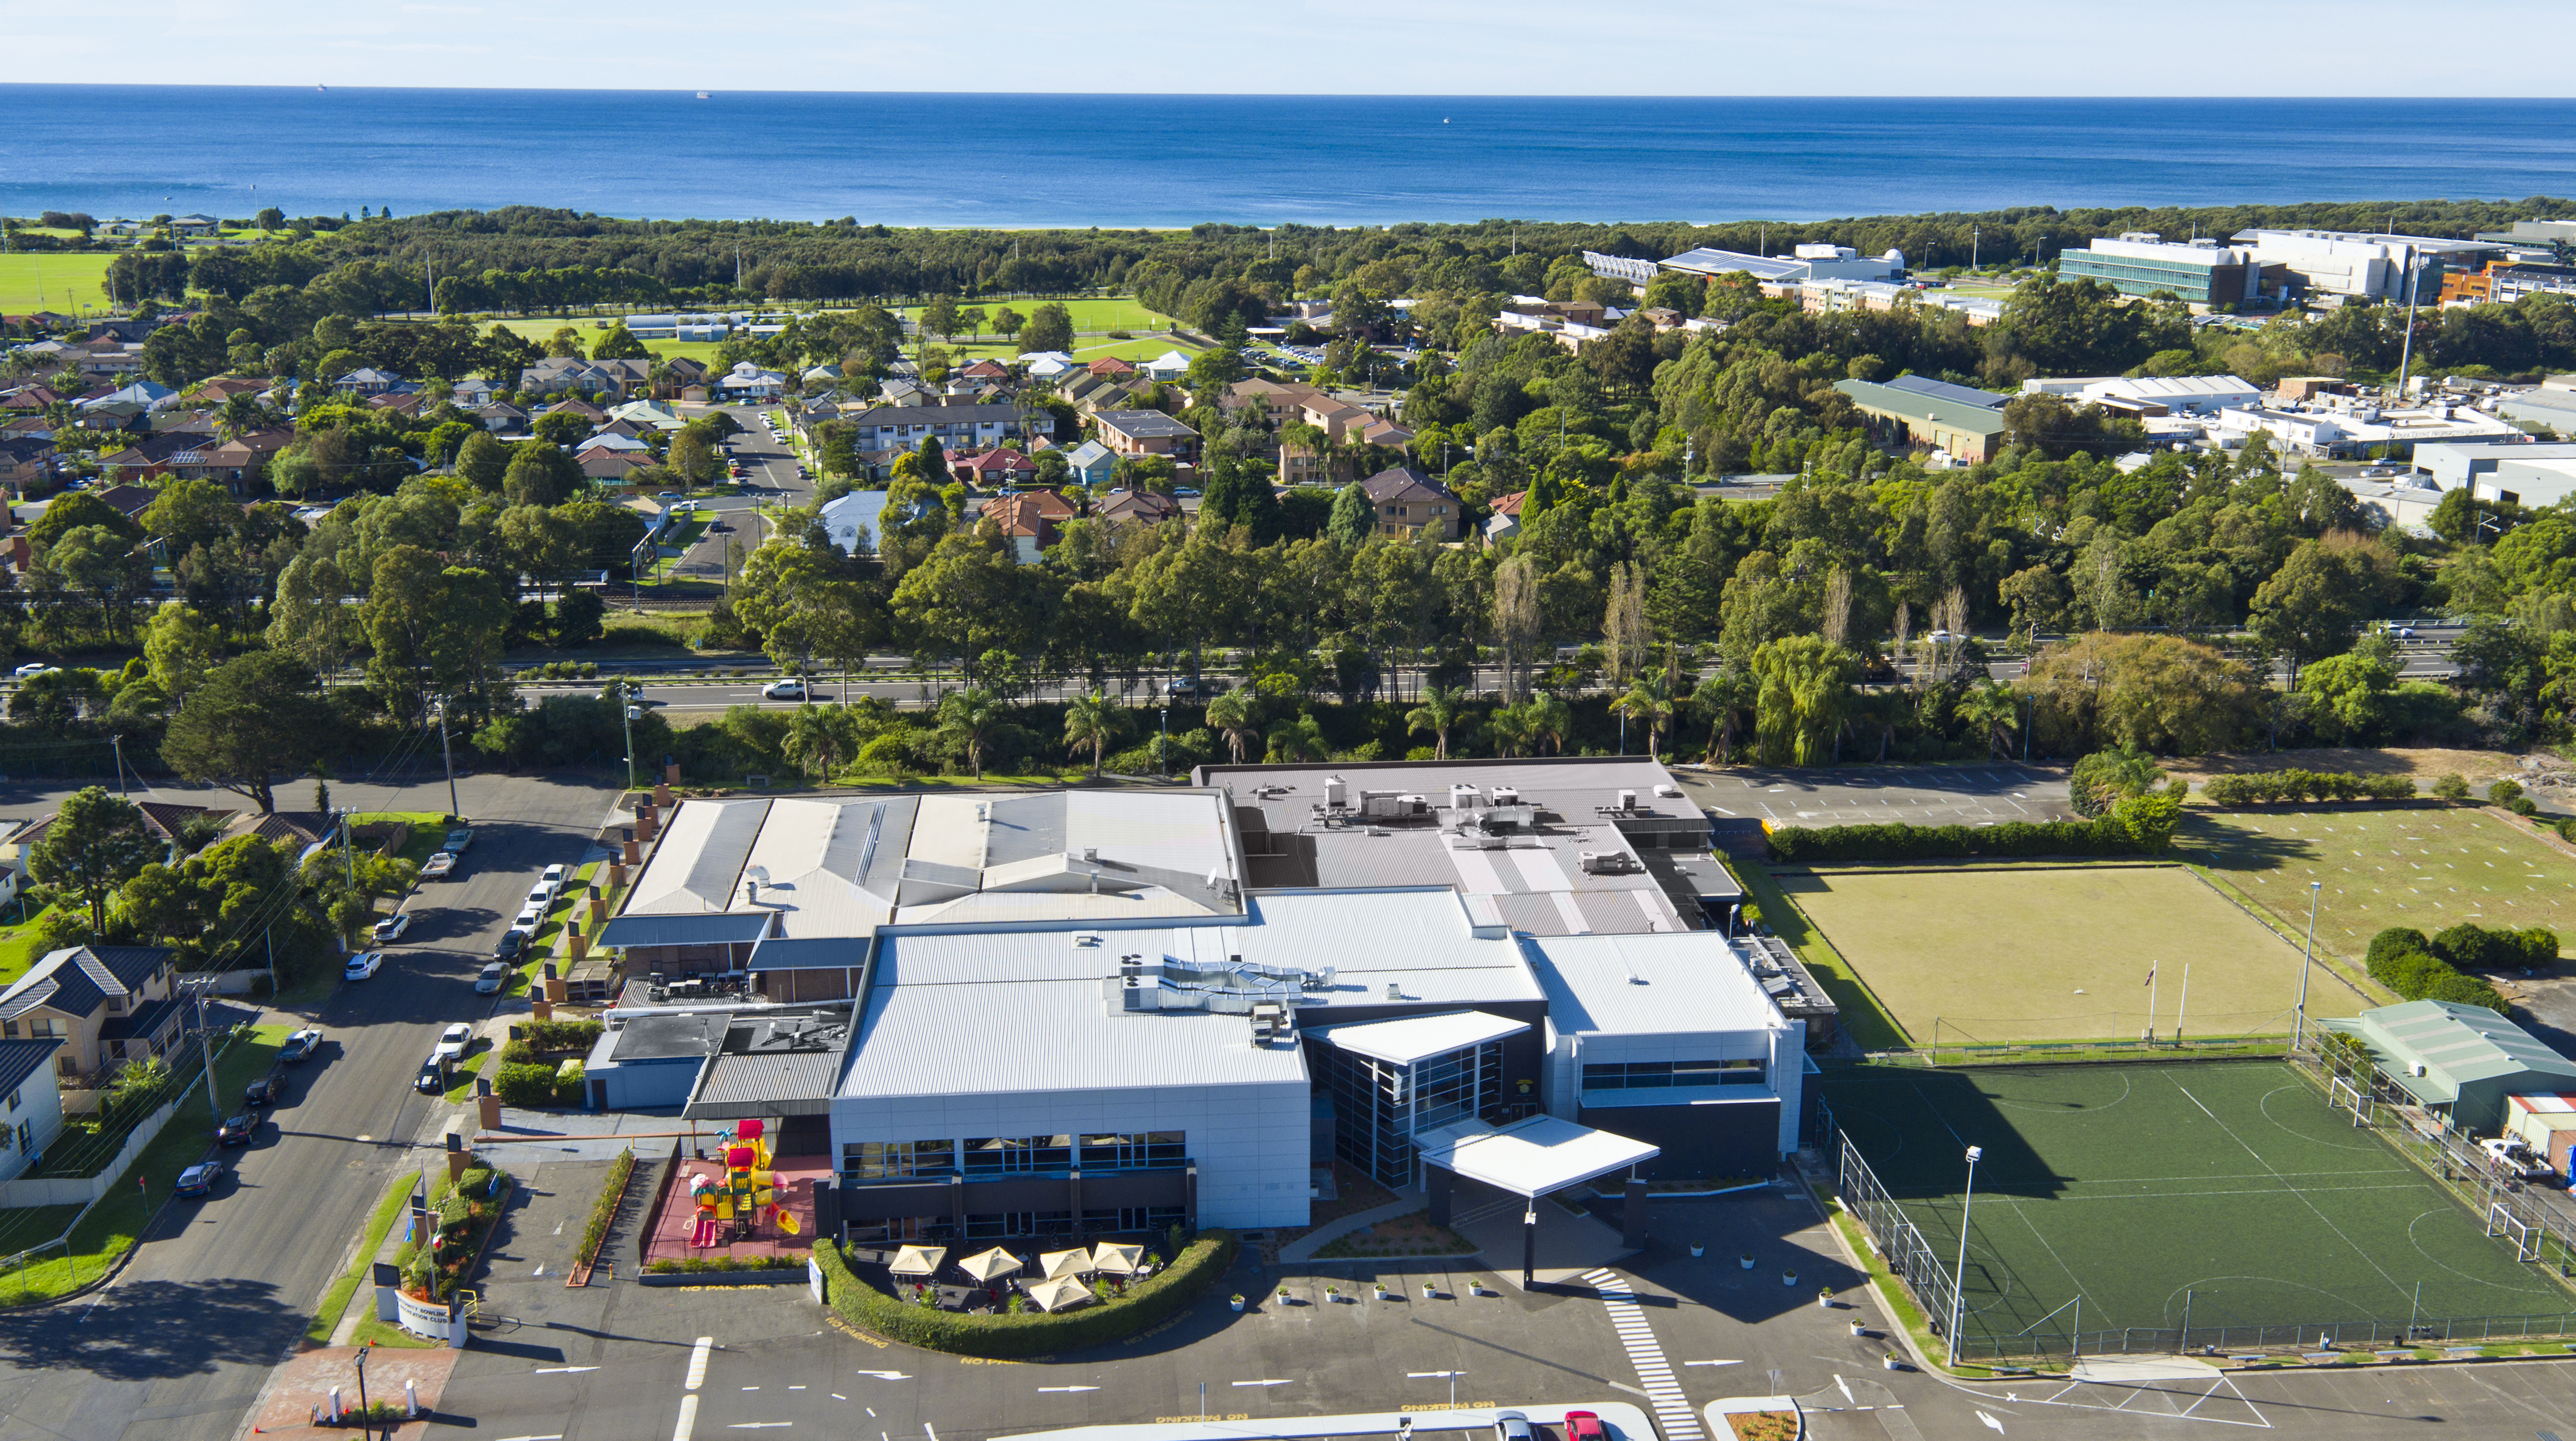 Frat Aerial 1-Print Res - Roof ReColoure